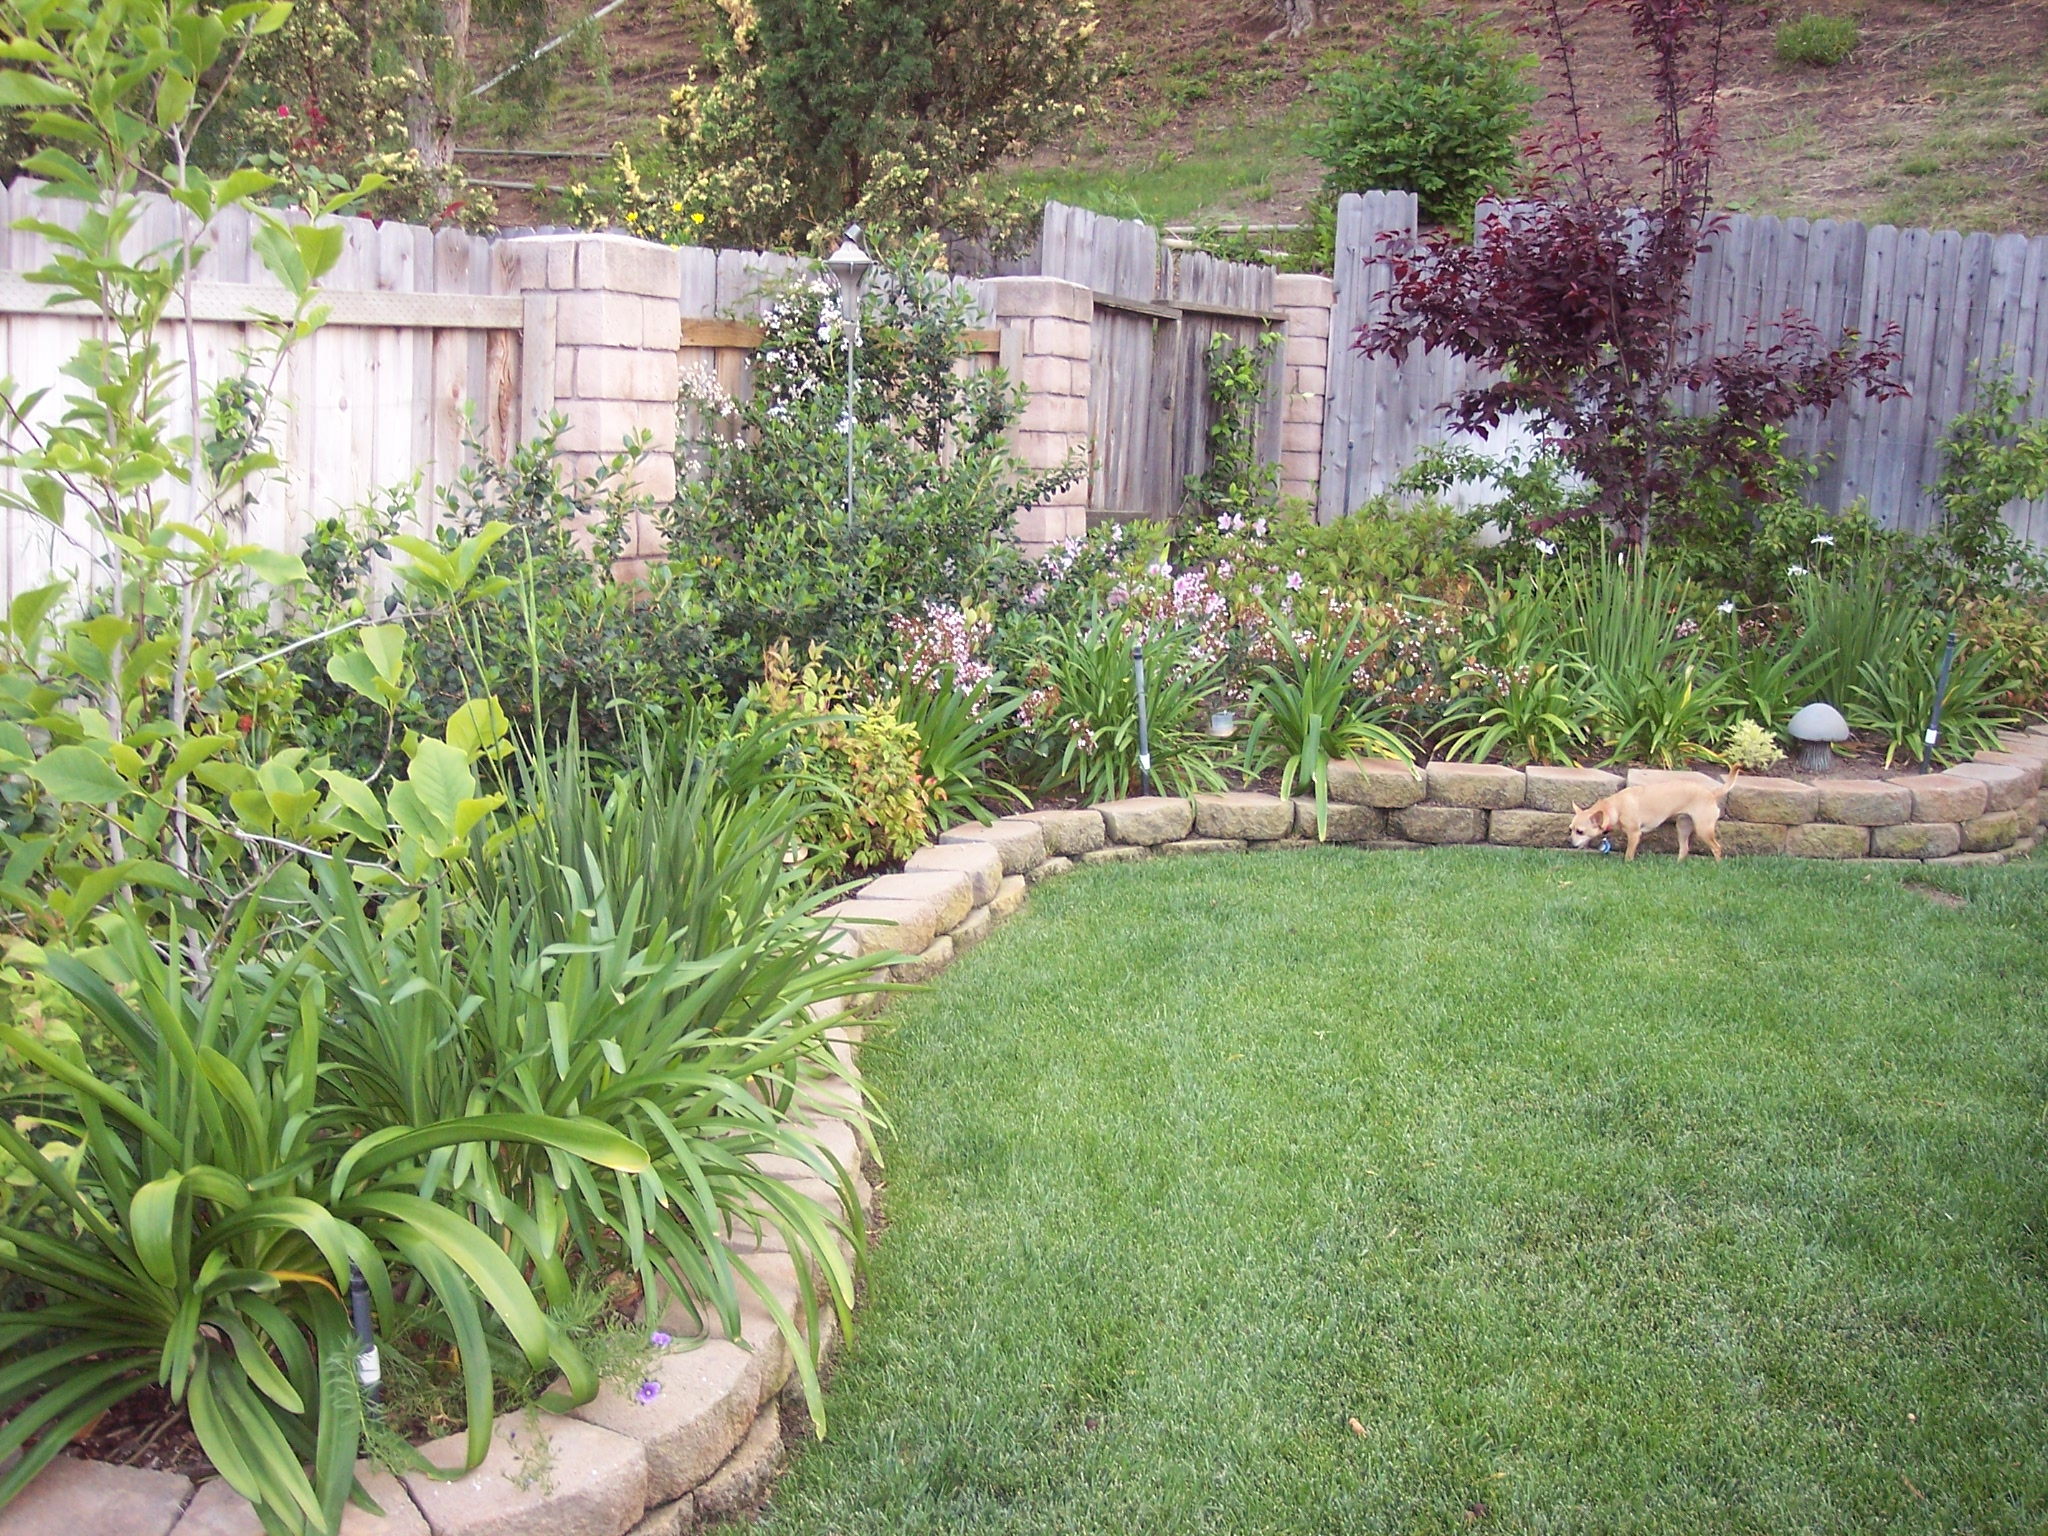 backyard renovation ideas photo - 1